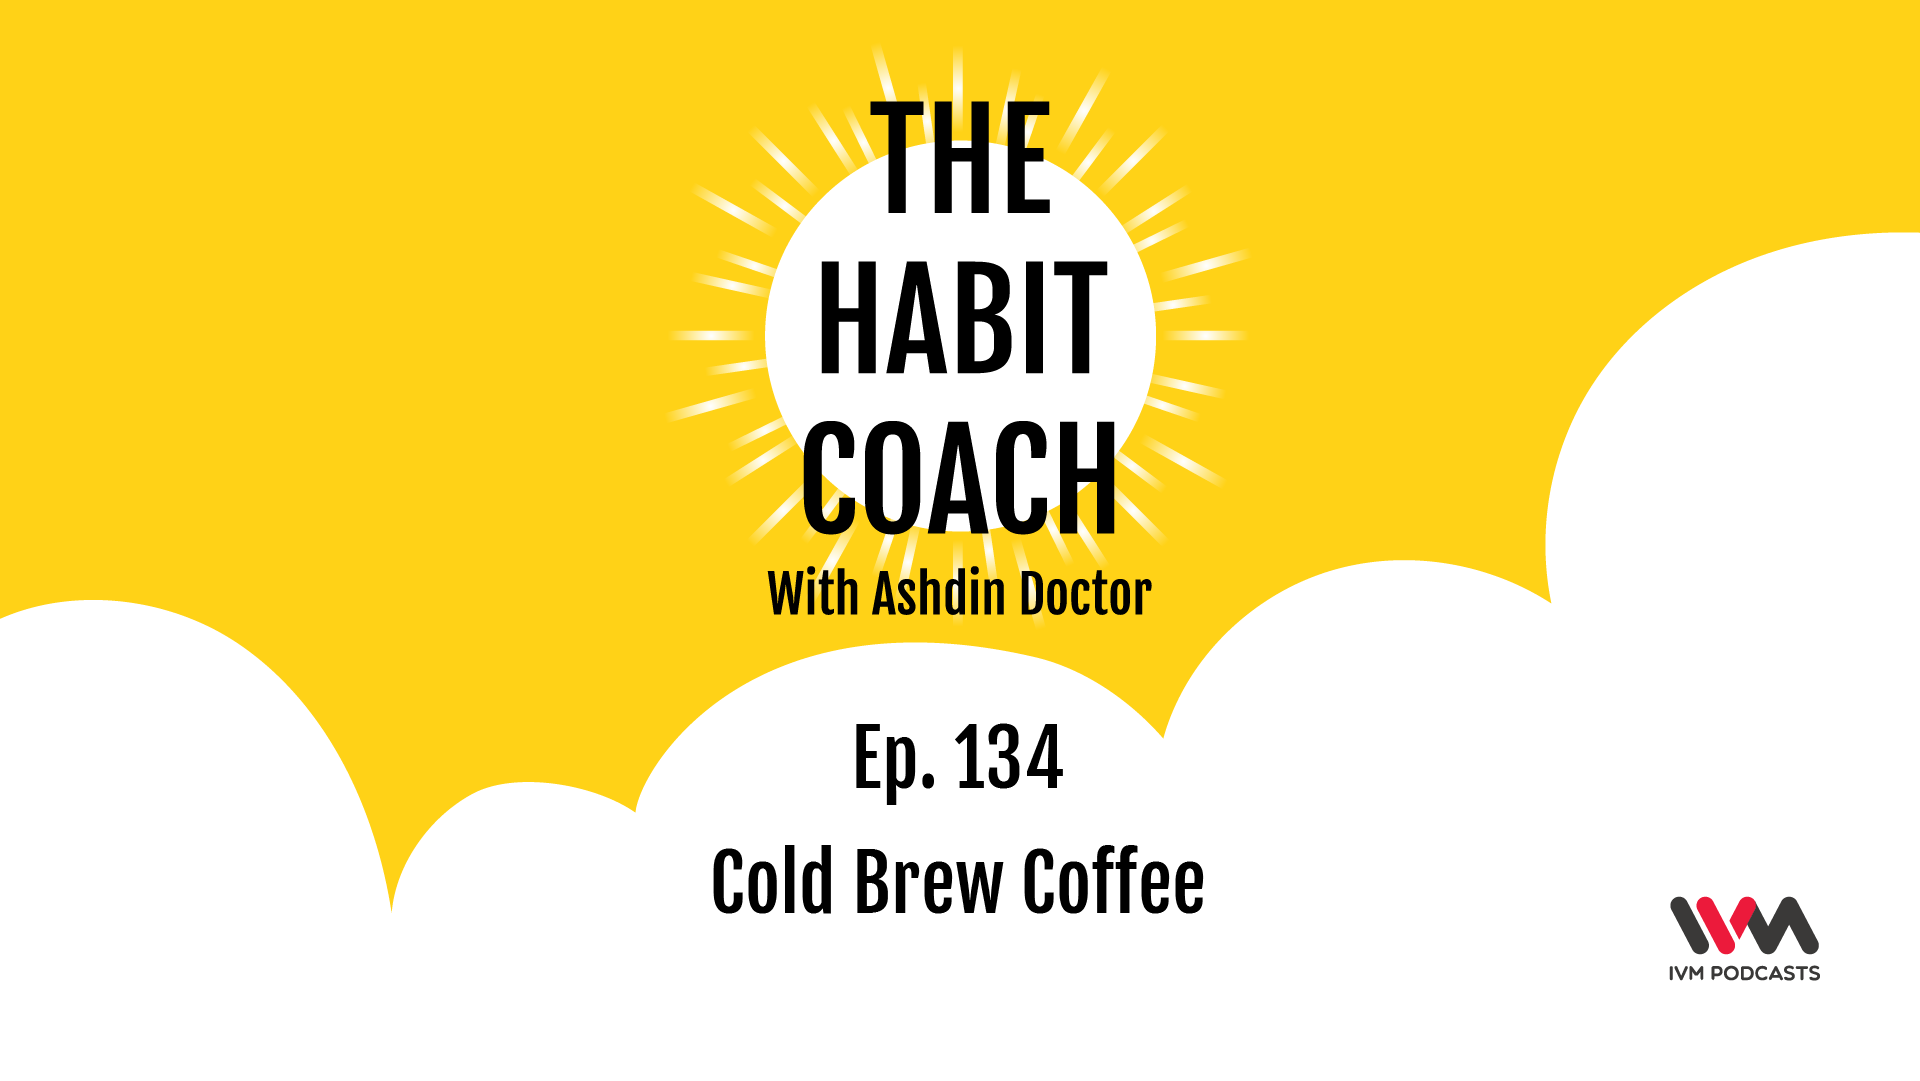 TheHabitCoachEpisode134.png